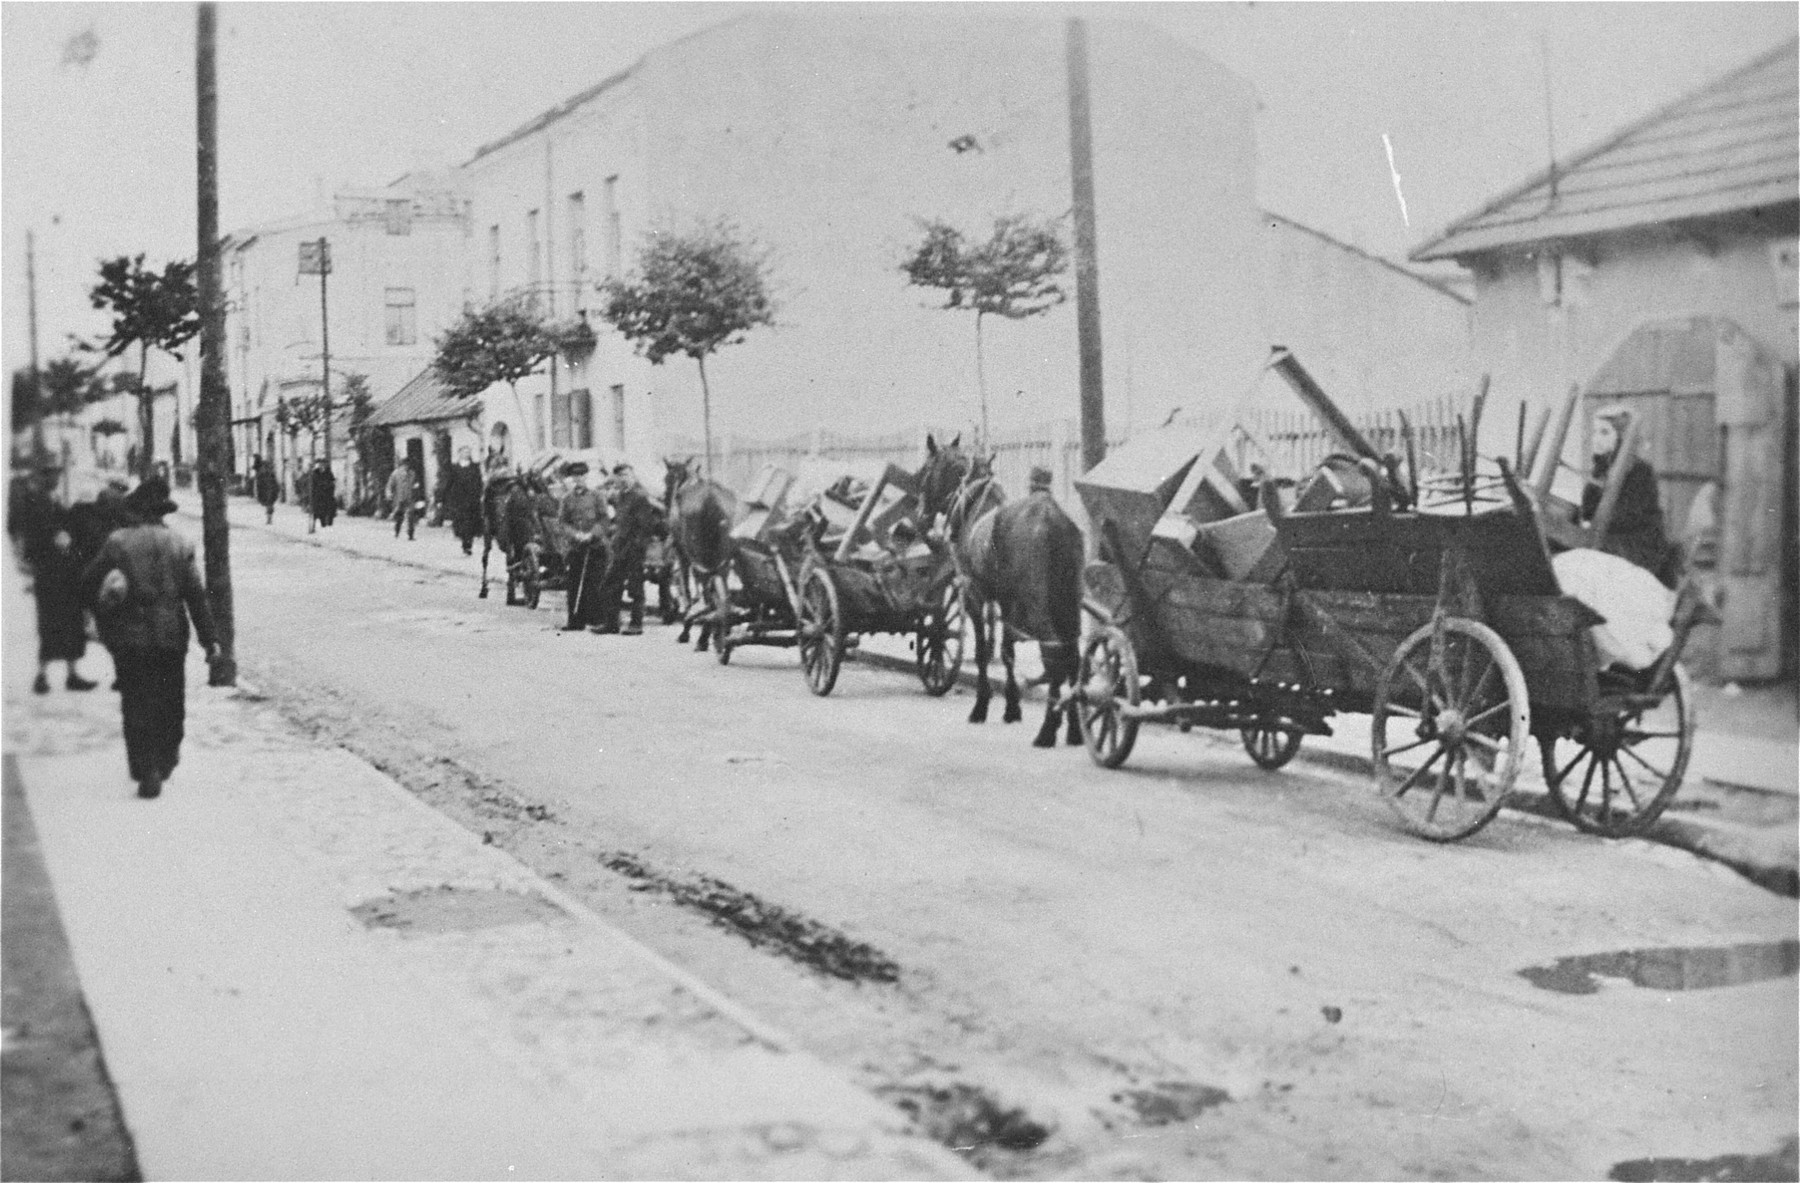 A procession of horse-drawn wagons bearing the belongings of local Jews makes its way down a street in Olkusz.